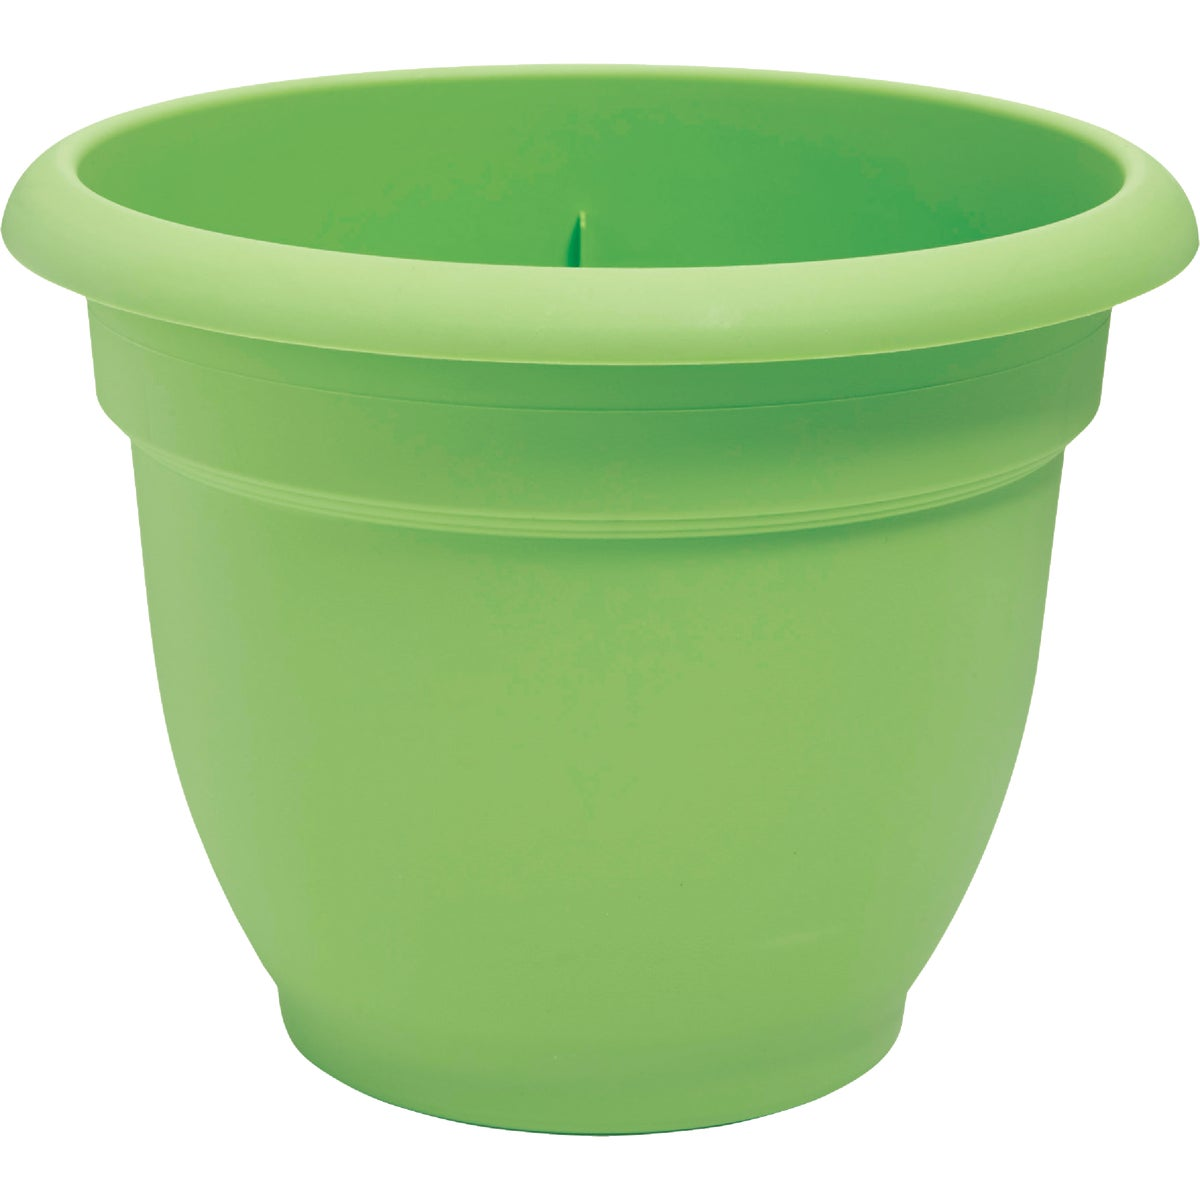 "10"" PERIDOT ARIANA POT - 465100-1001 by Fiskars Brands Inc"